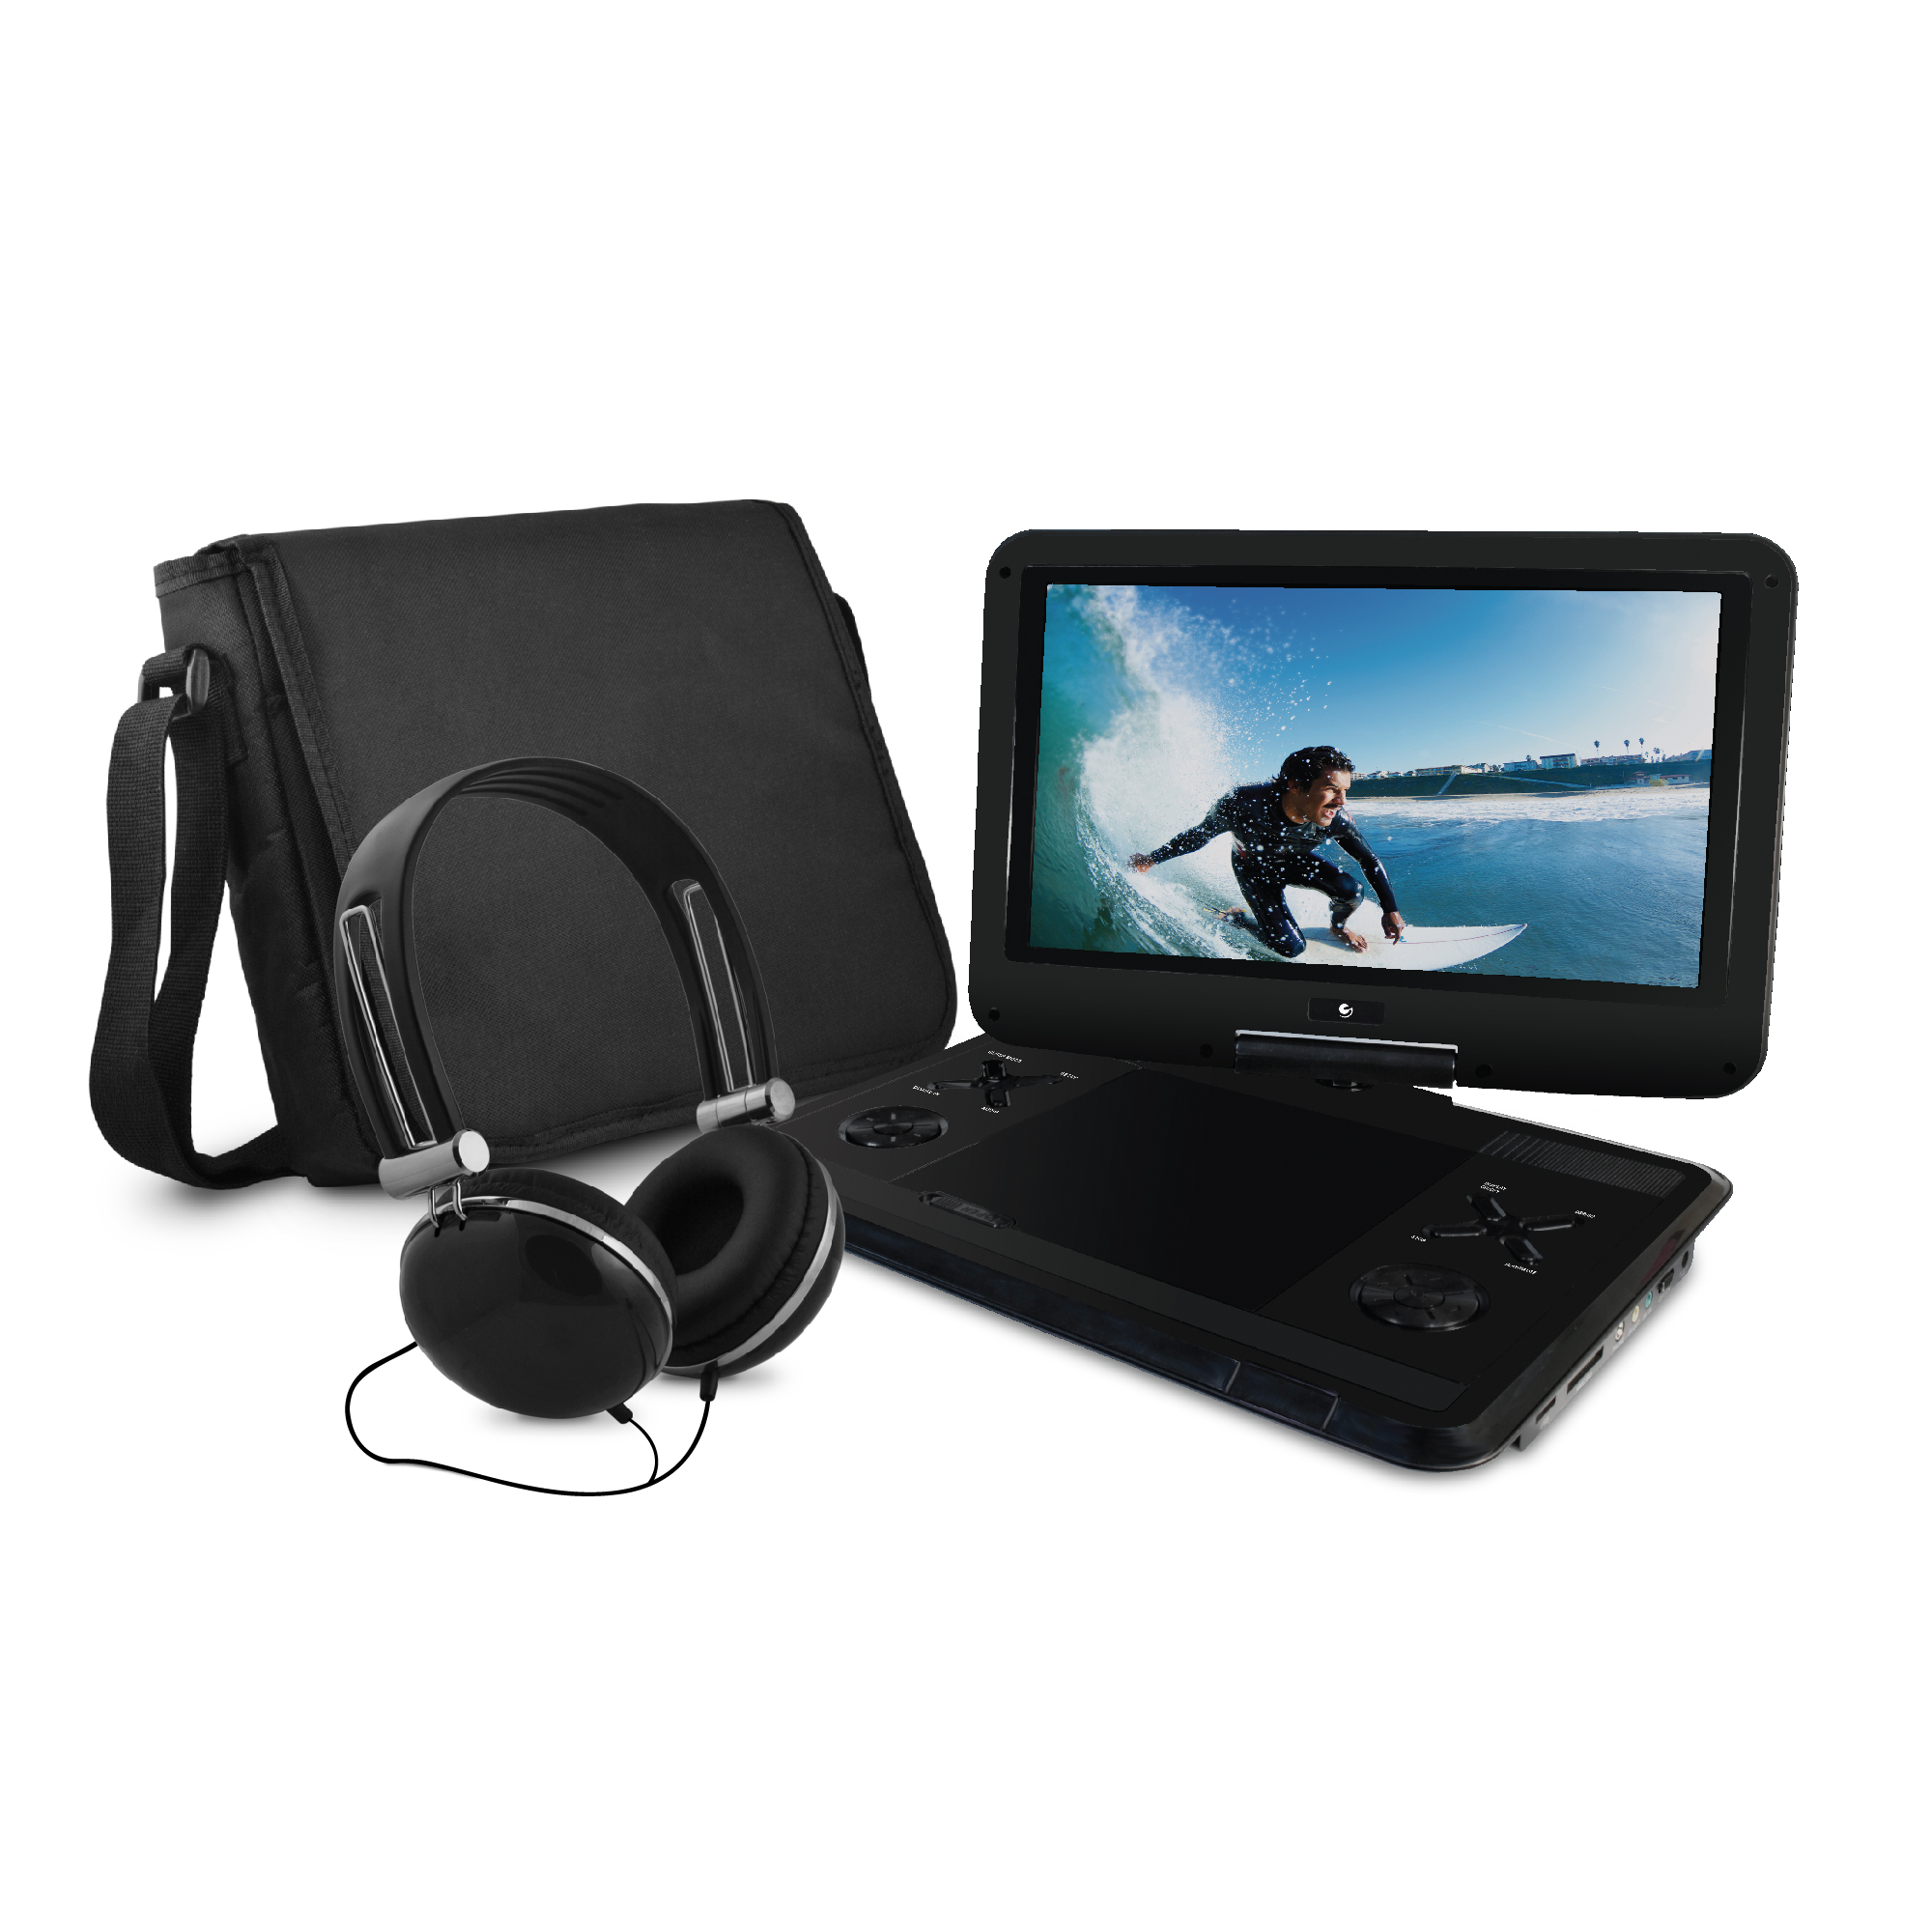 "Ematic 12.1"" Portable DVD Player with Travel Bag and Headphones Bundle - Black"